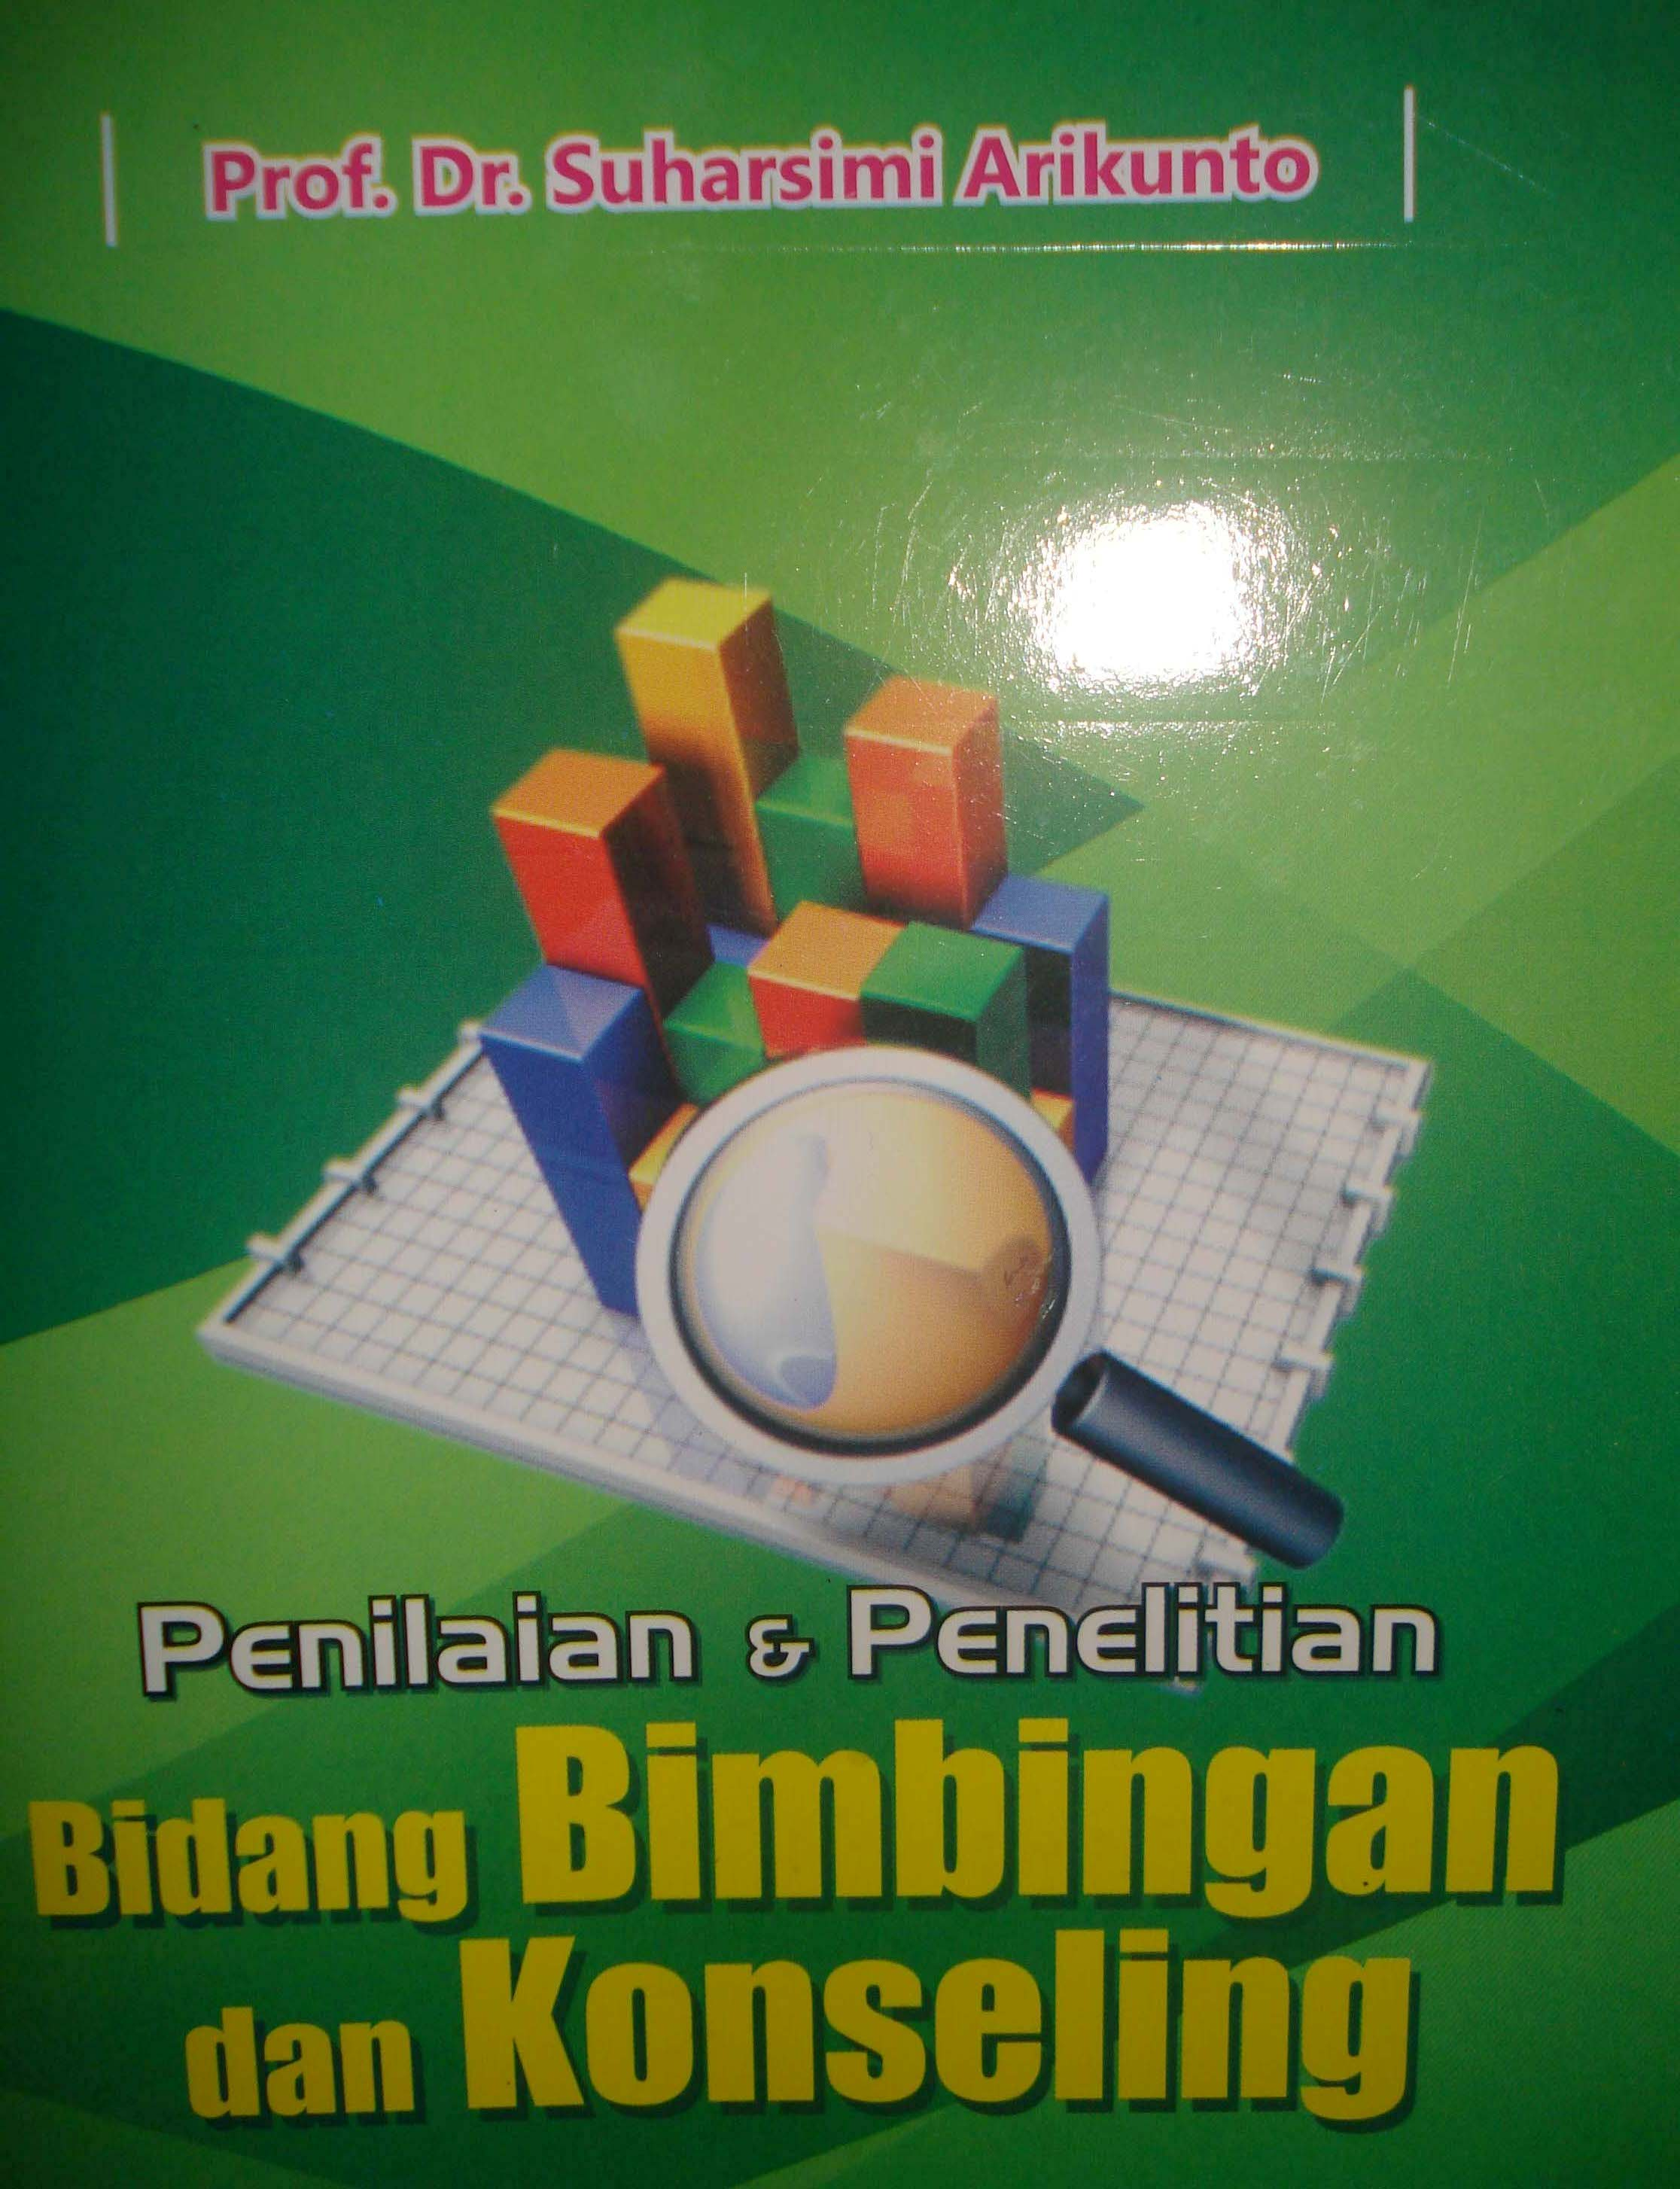 download dan konseling curriculum file konseling model kurikulum ...